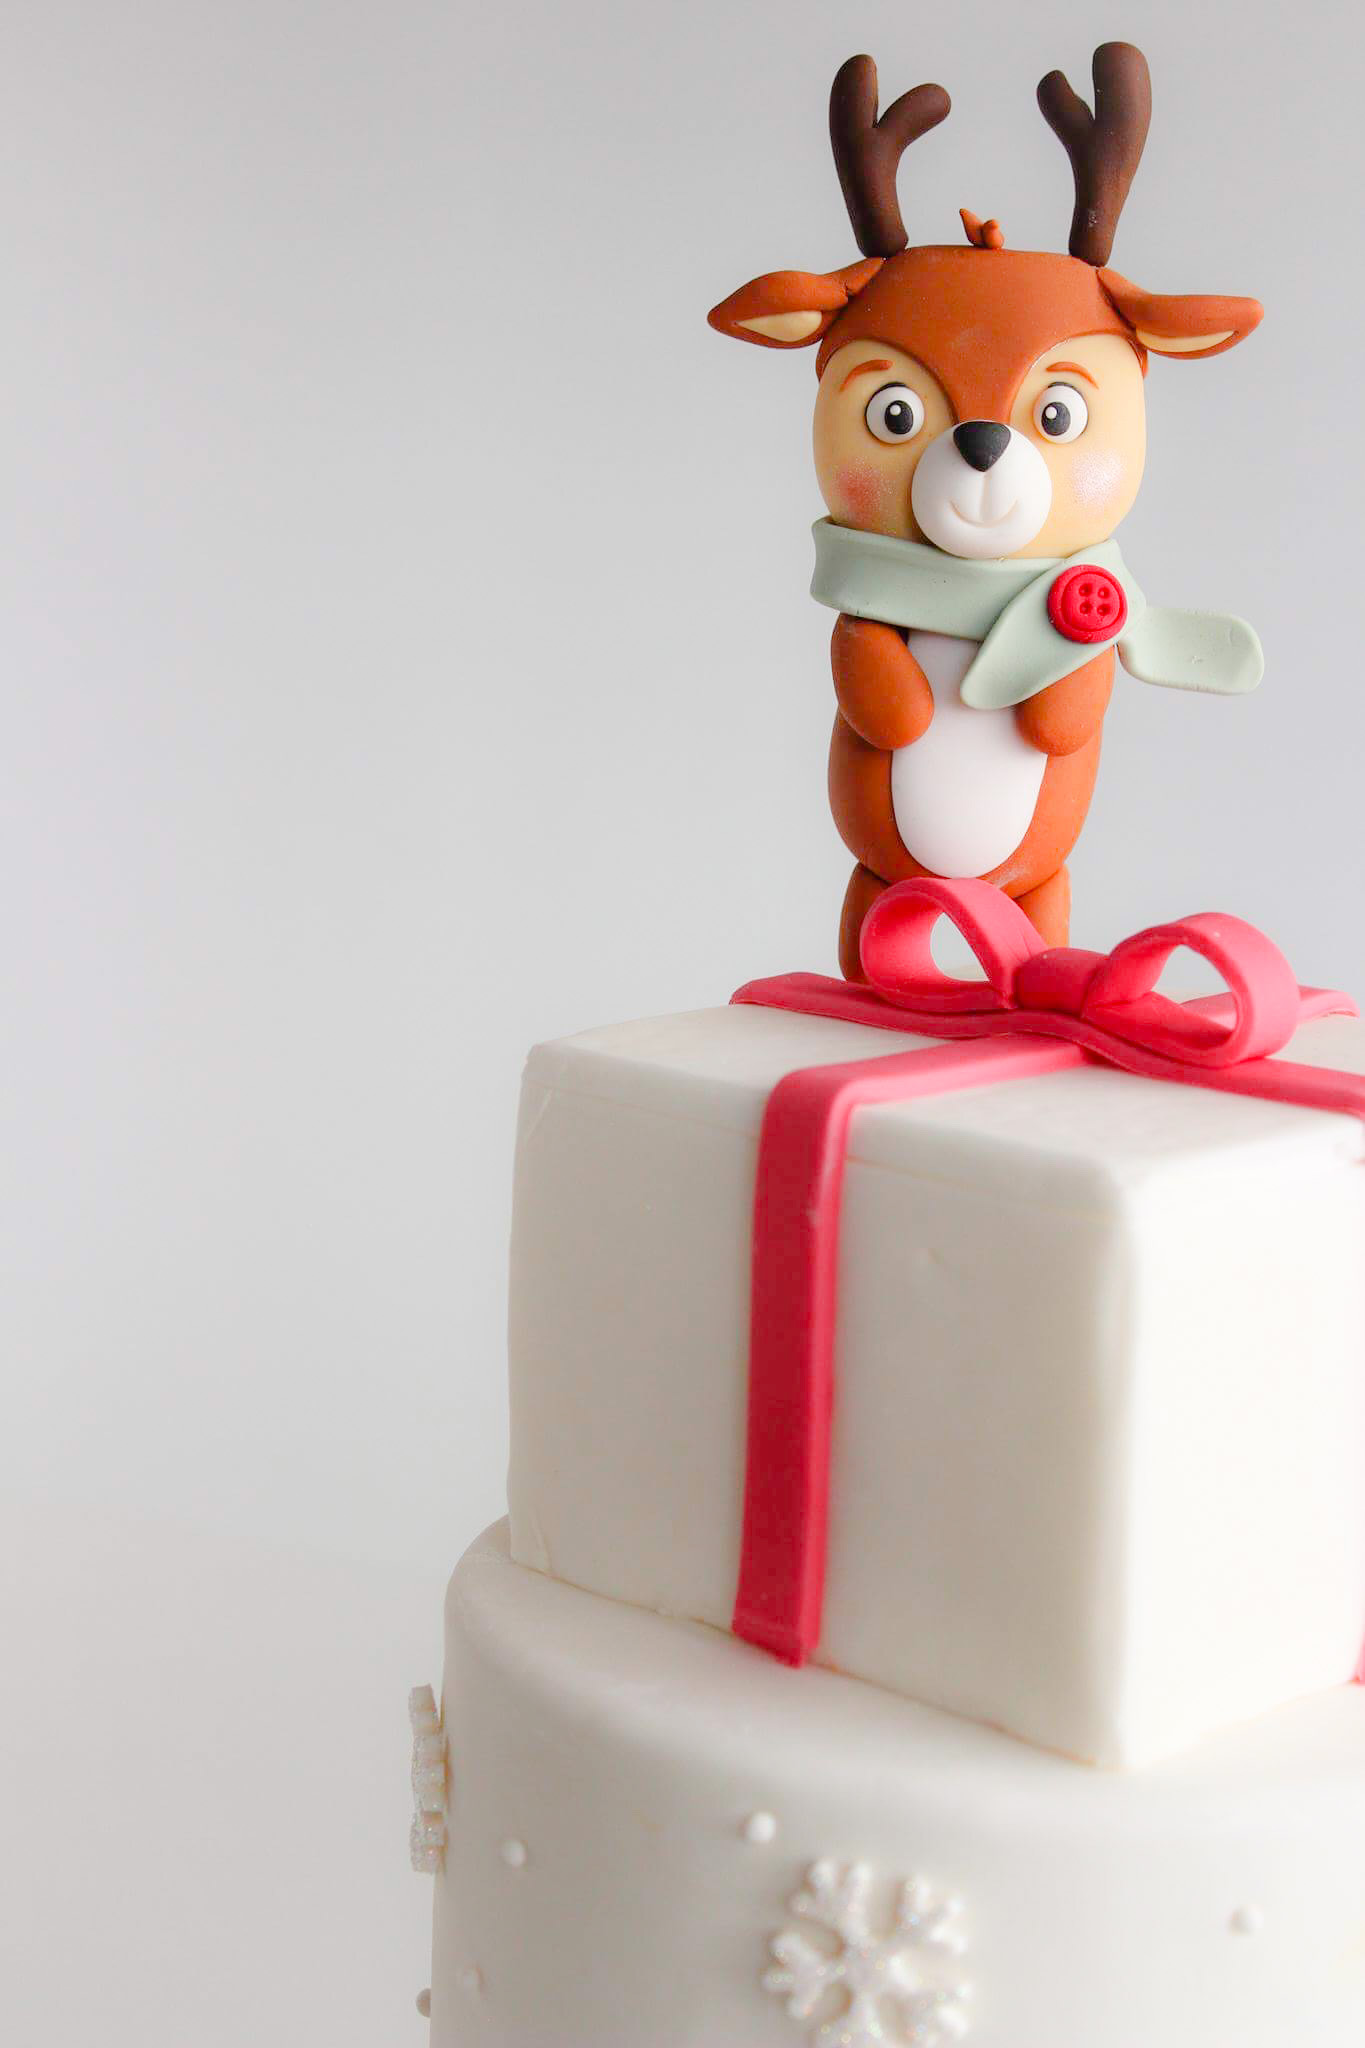 White fondant cake with reindeer topper